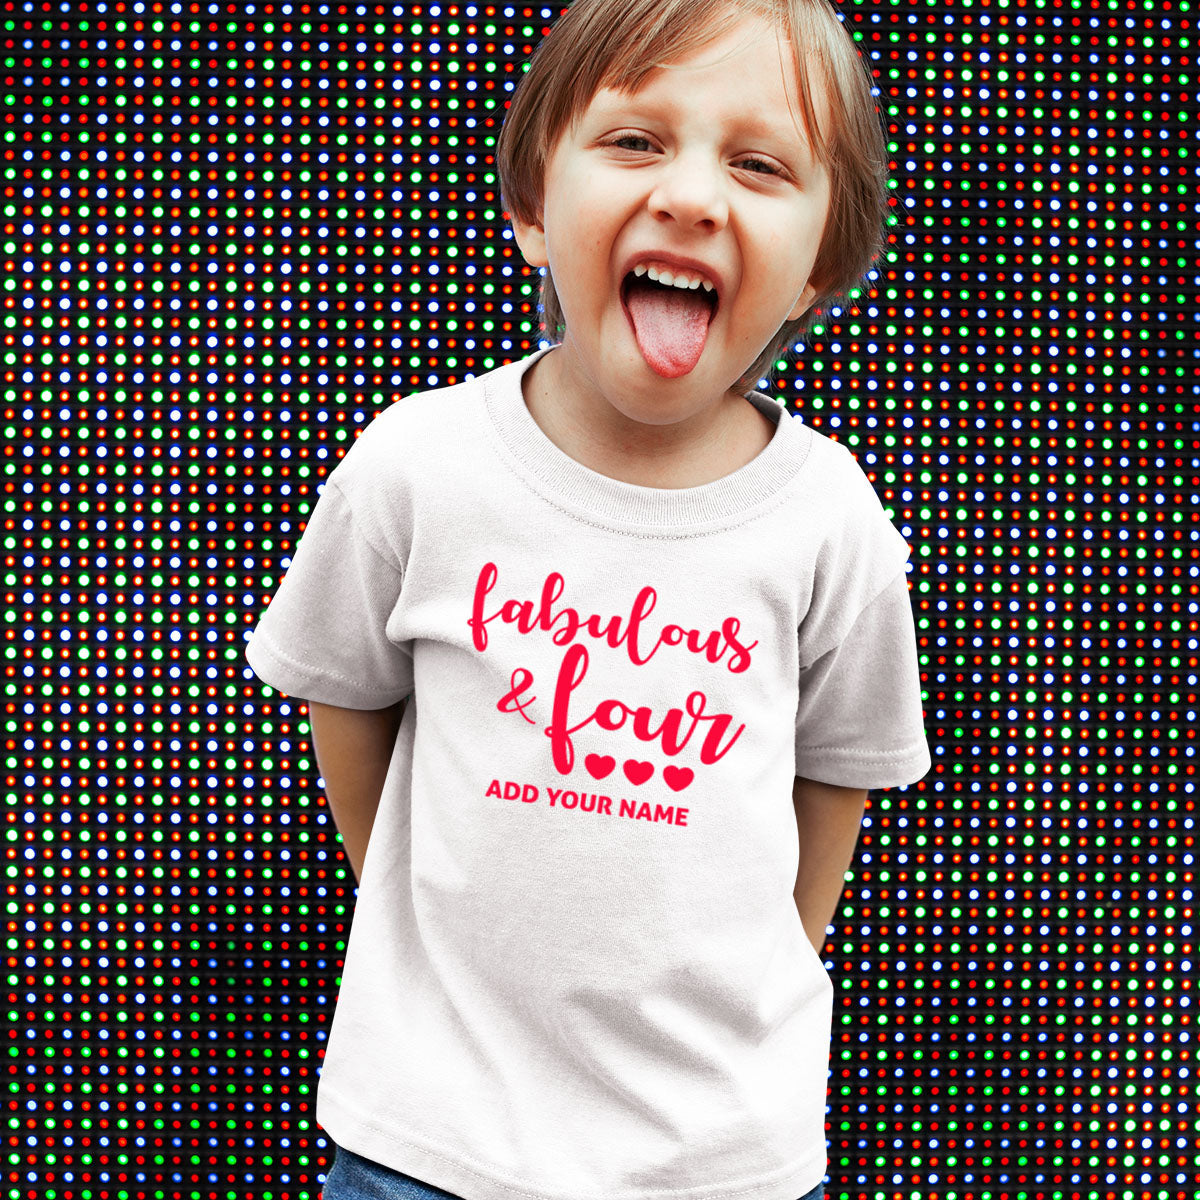 Sprinklecart Make This Birthday Special | Customized Name Printed Little Fabulous Birthday T Shirt for Your Little One | Perfect Birthday Tee Wear